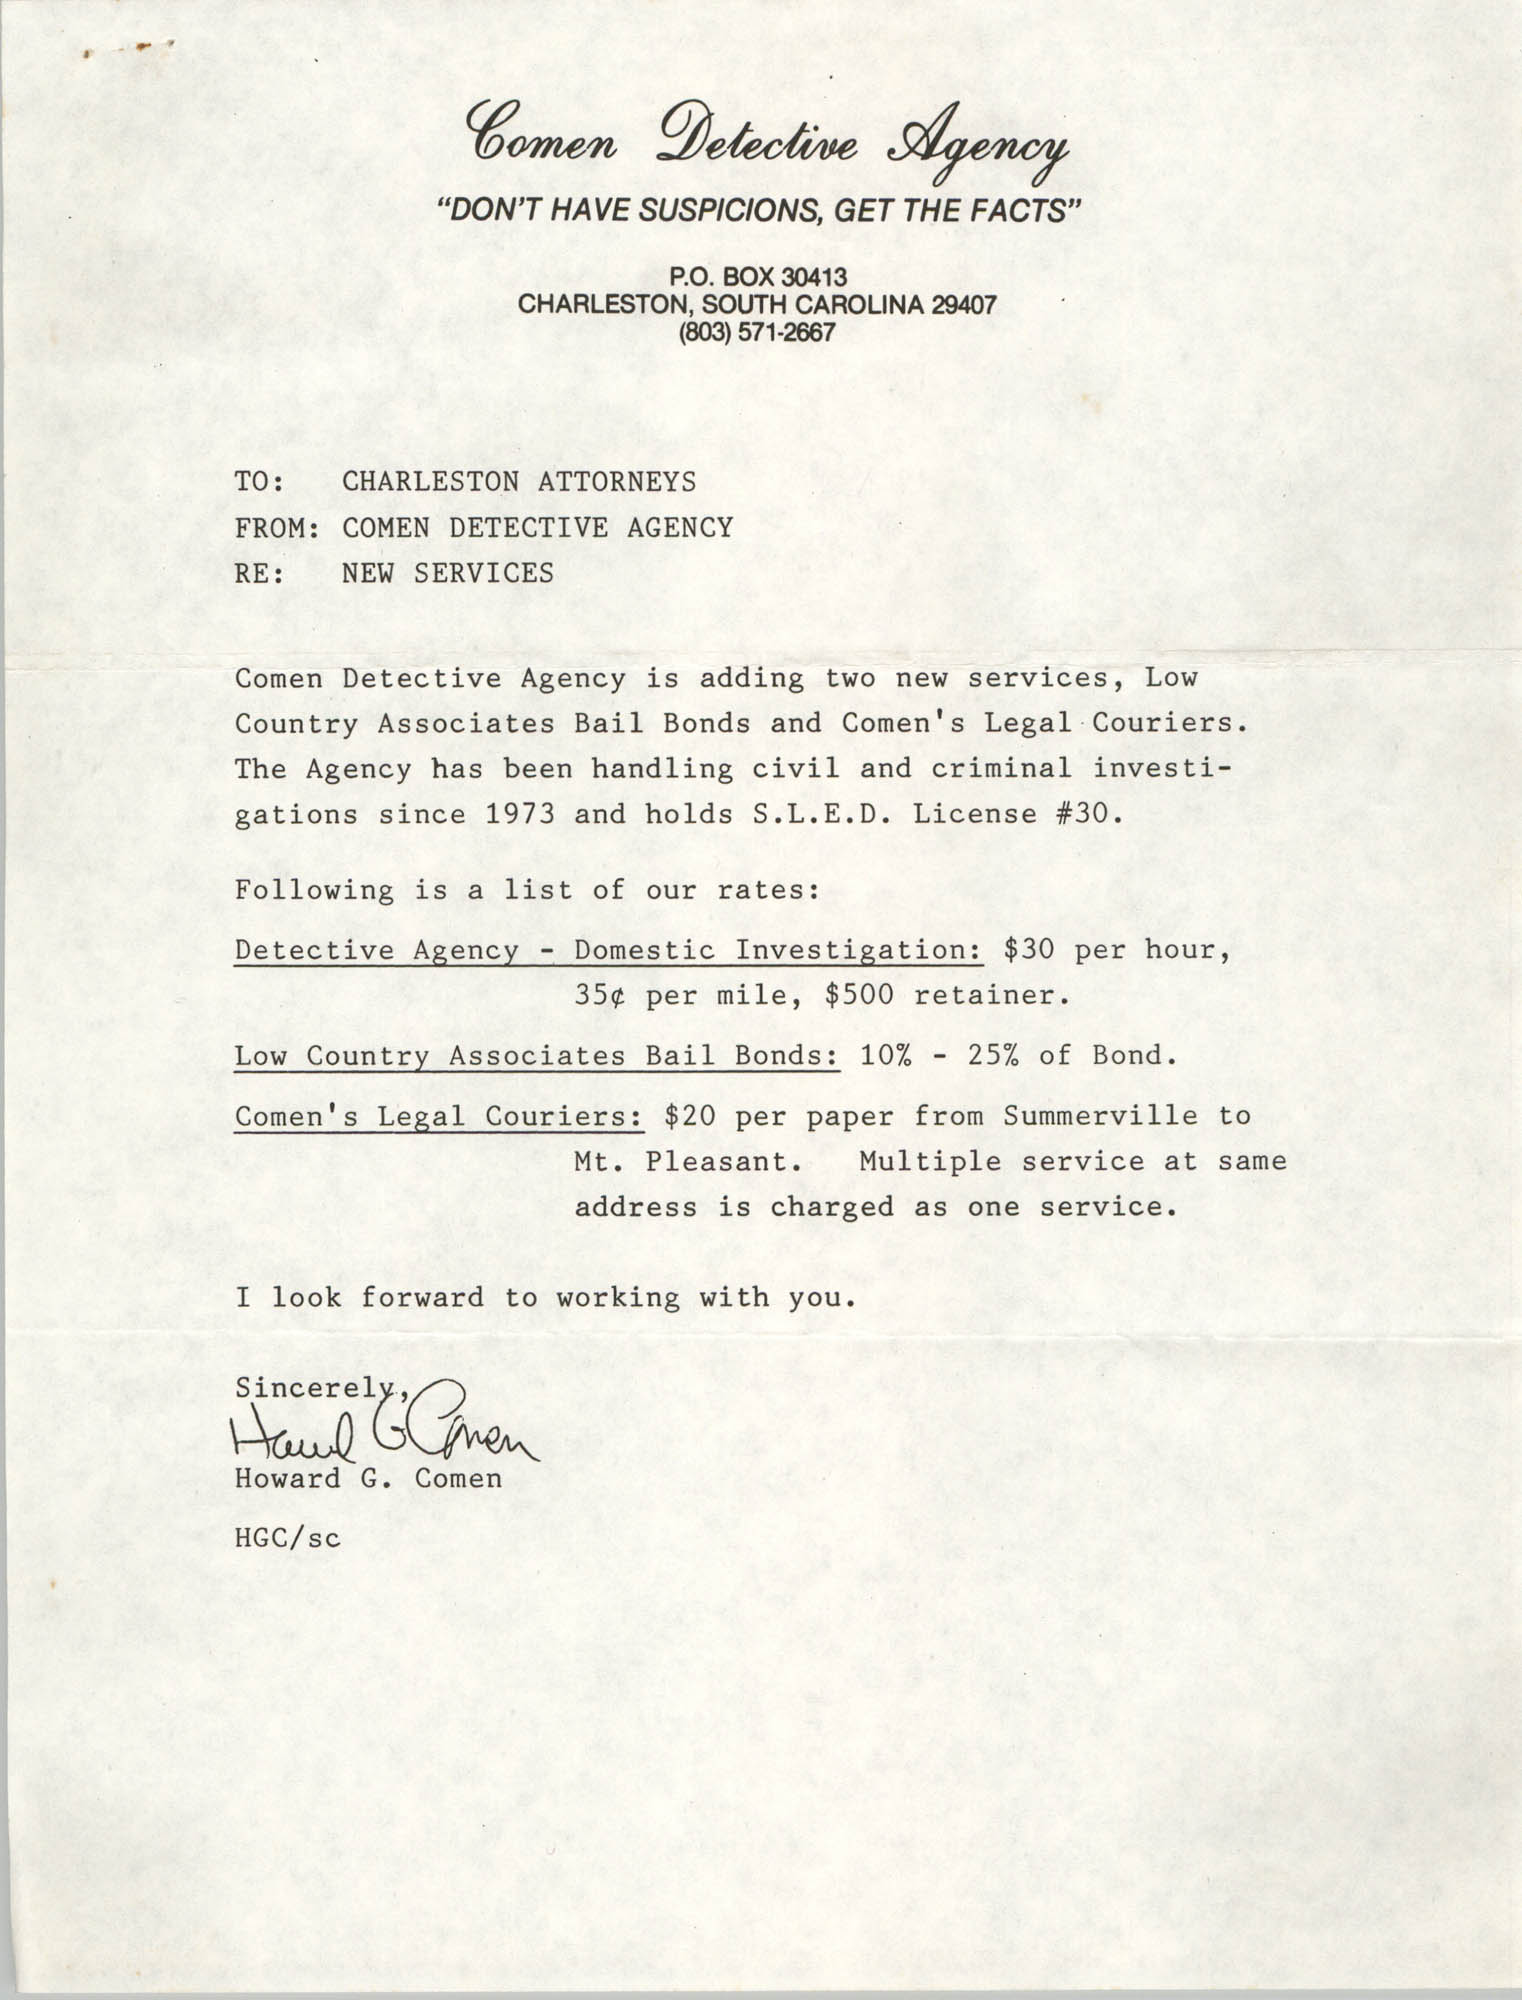 Letter from Howard G. Comen to Charleston Attorneys